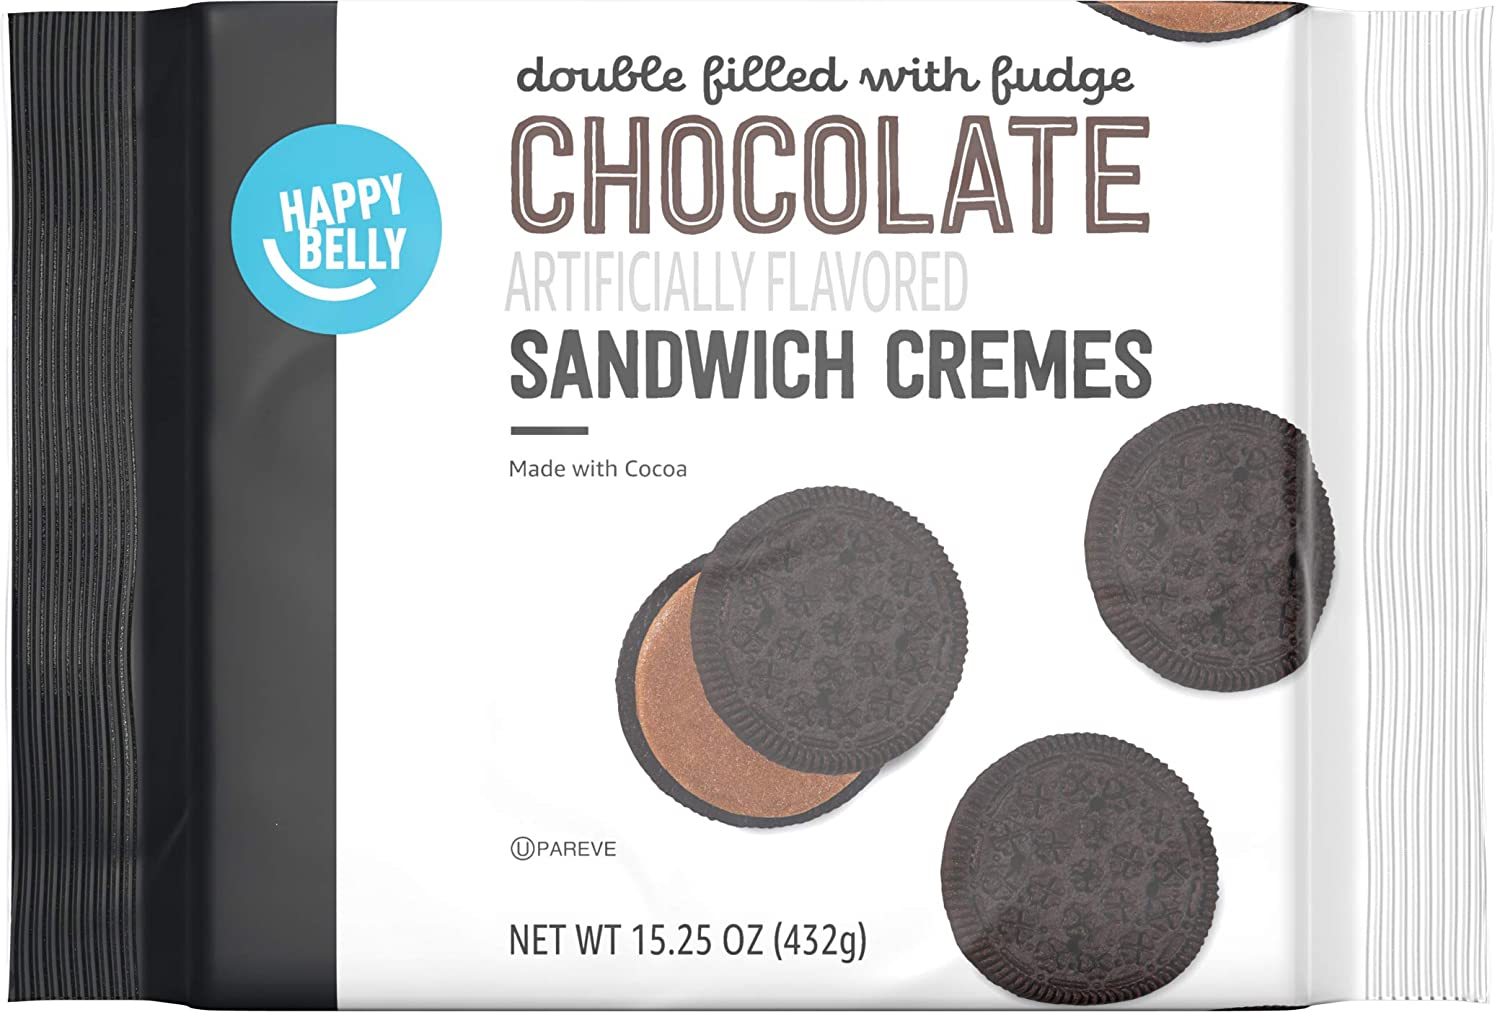 Amazon Brand - Happy Belly Double Filled with Fudge Chocolate Sandwich Crèmes Cookies, 15.25 Ounce